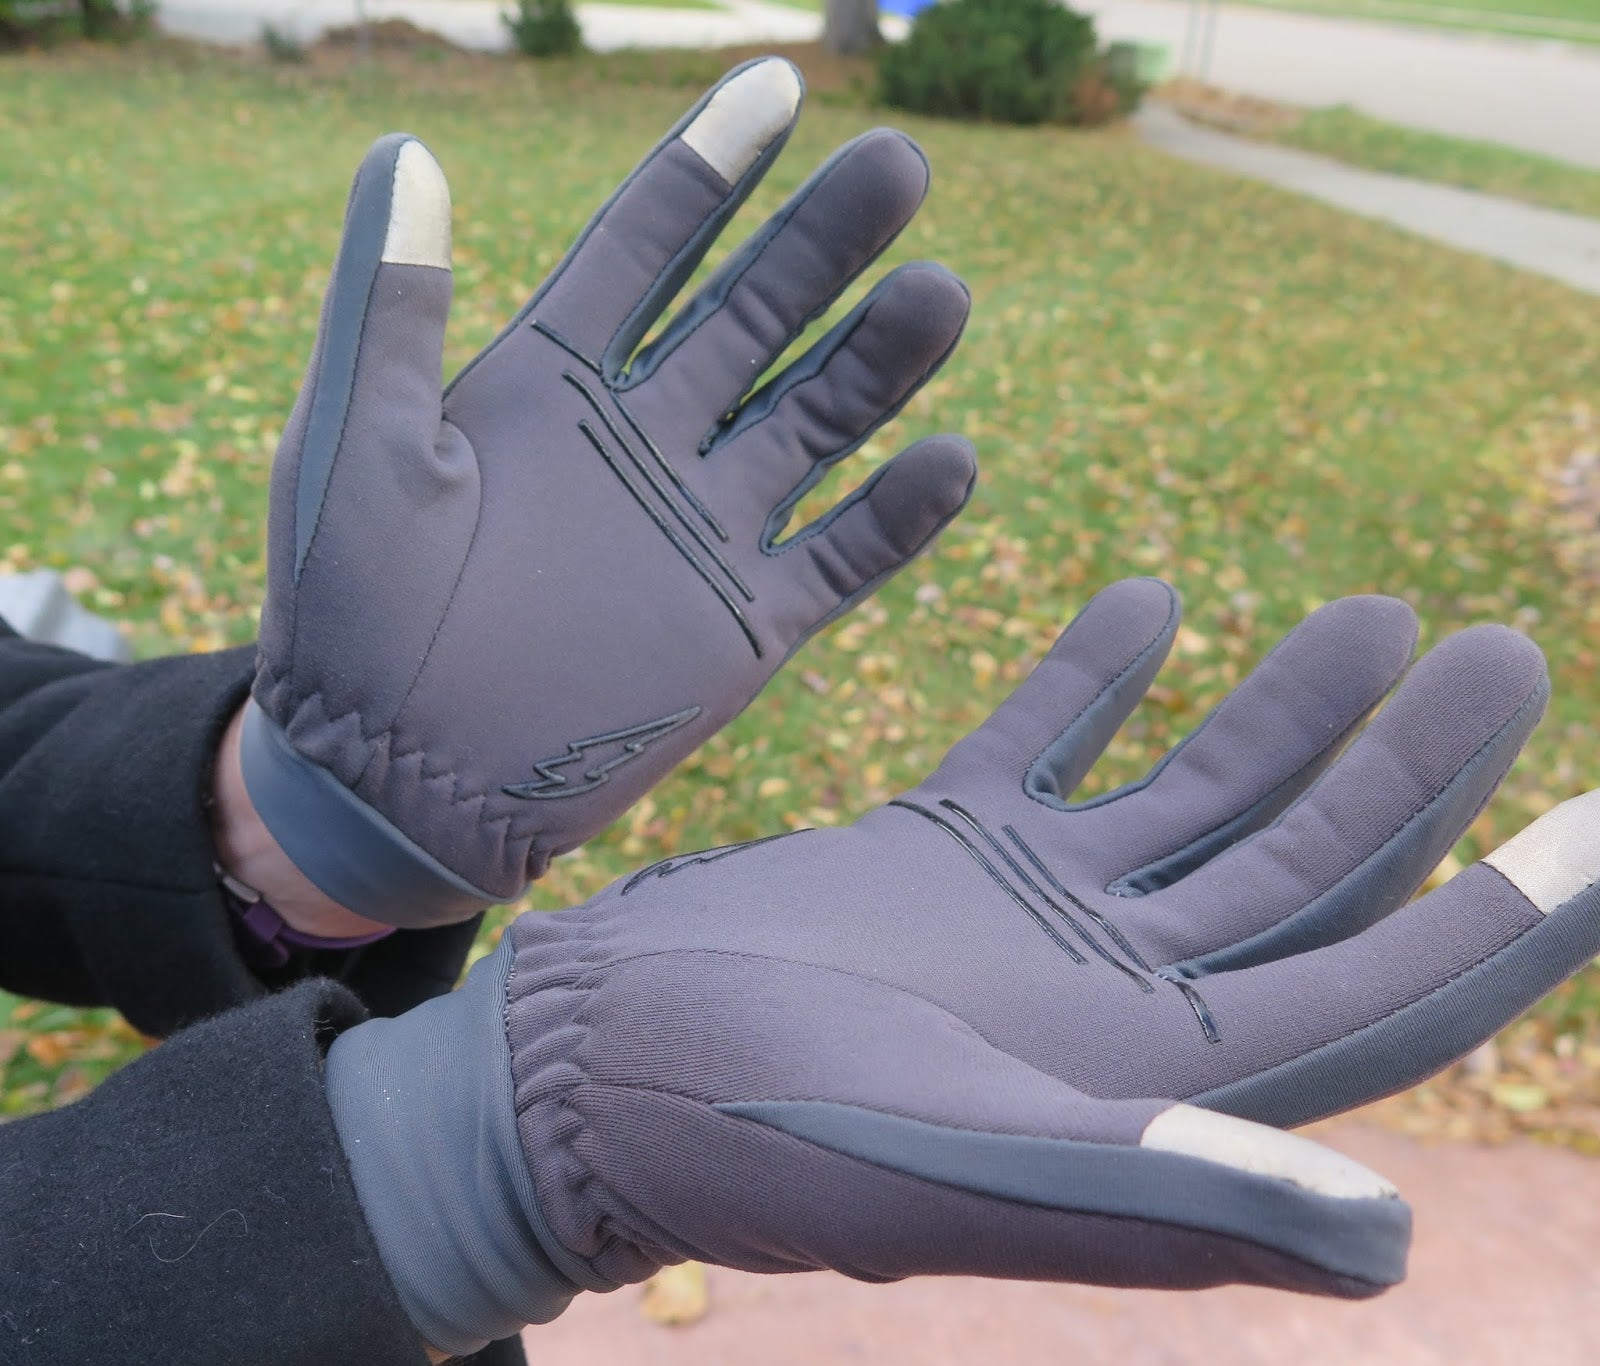 How To Clean The Leather Gloves With Running Water